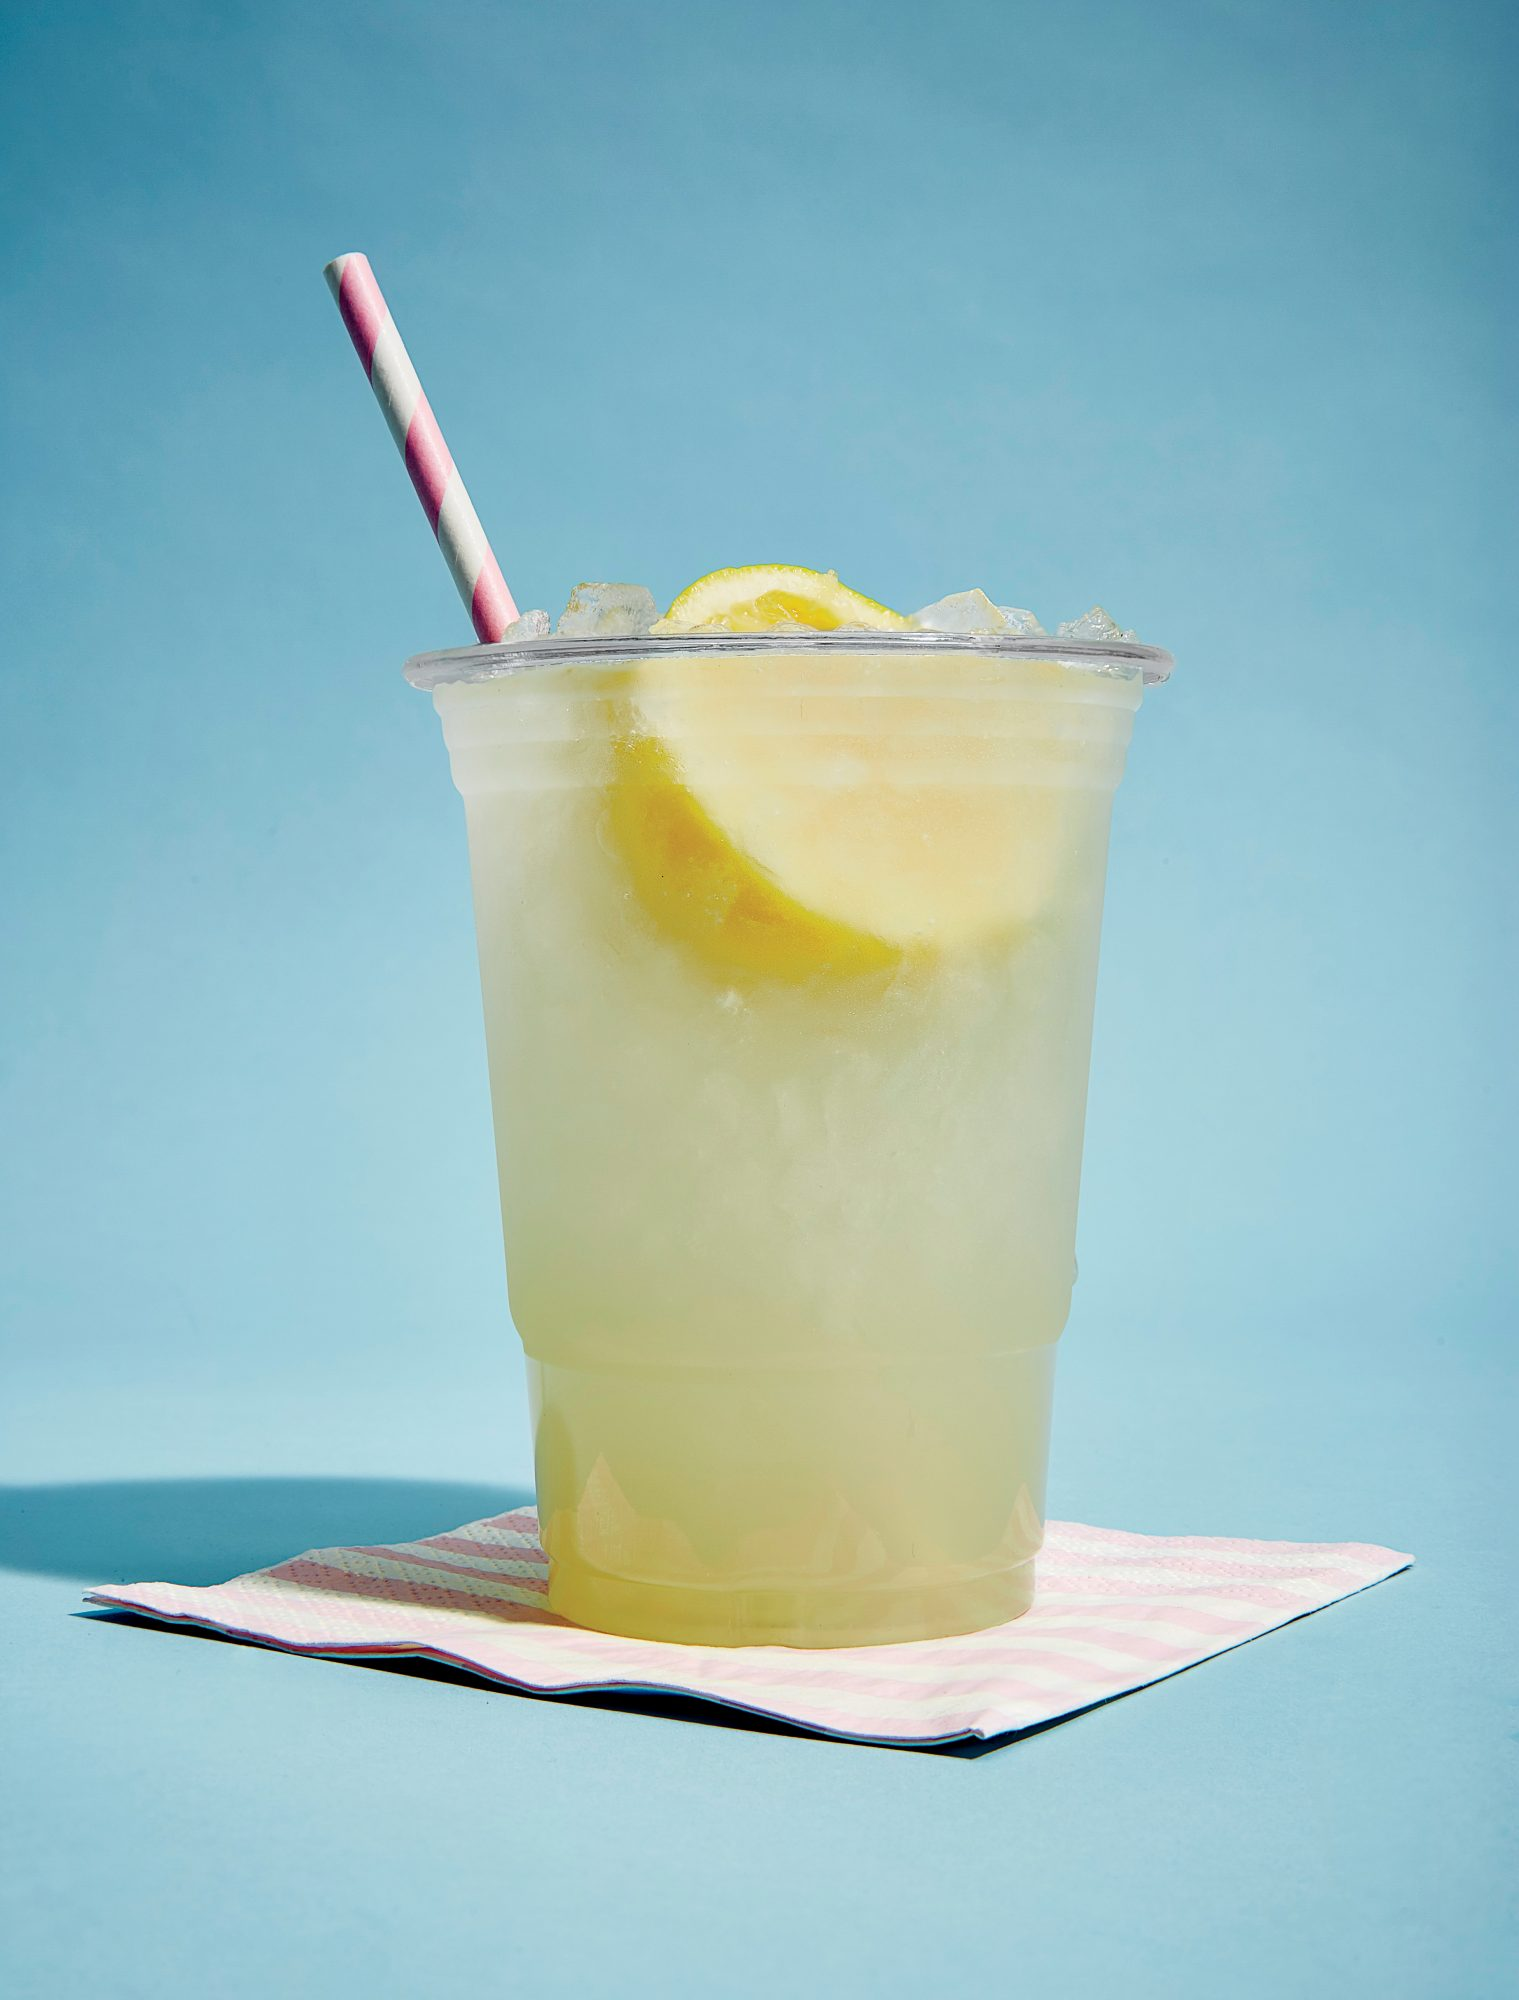 The Secret to Better Lemonade and Limeade